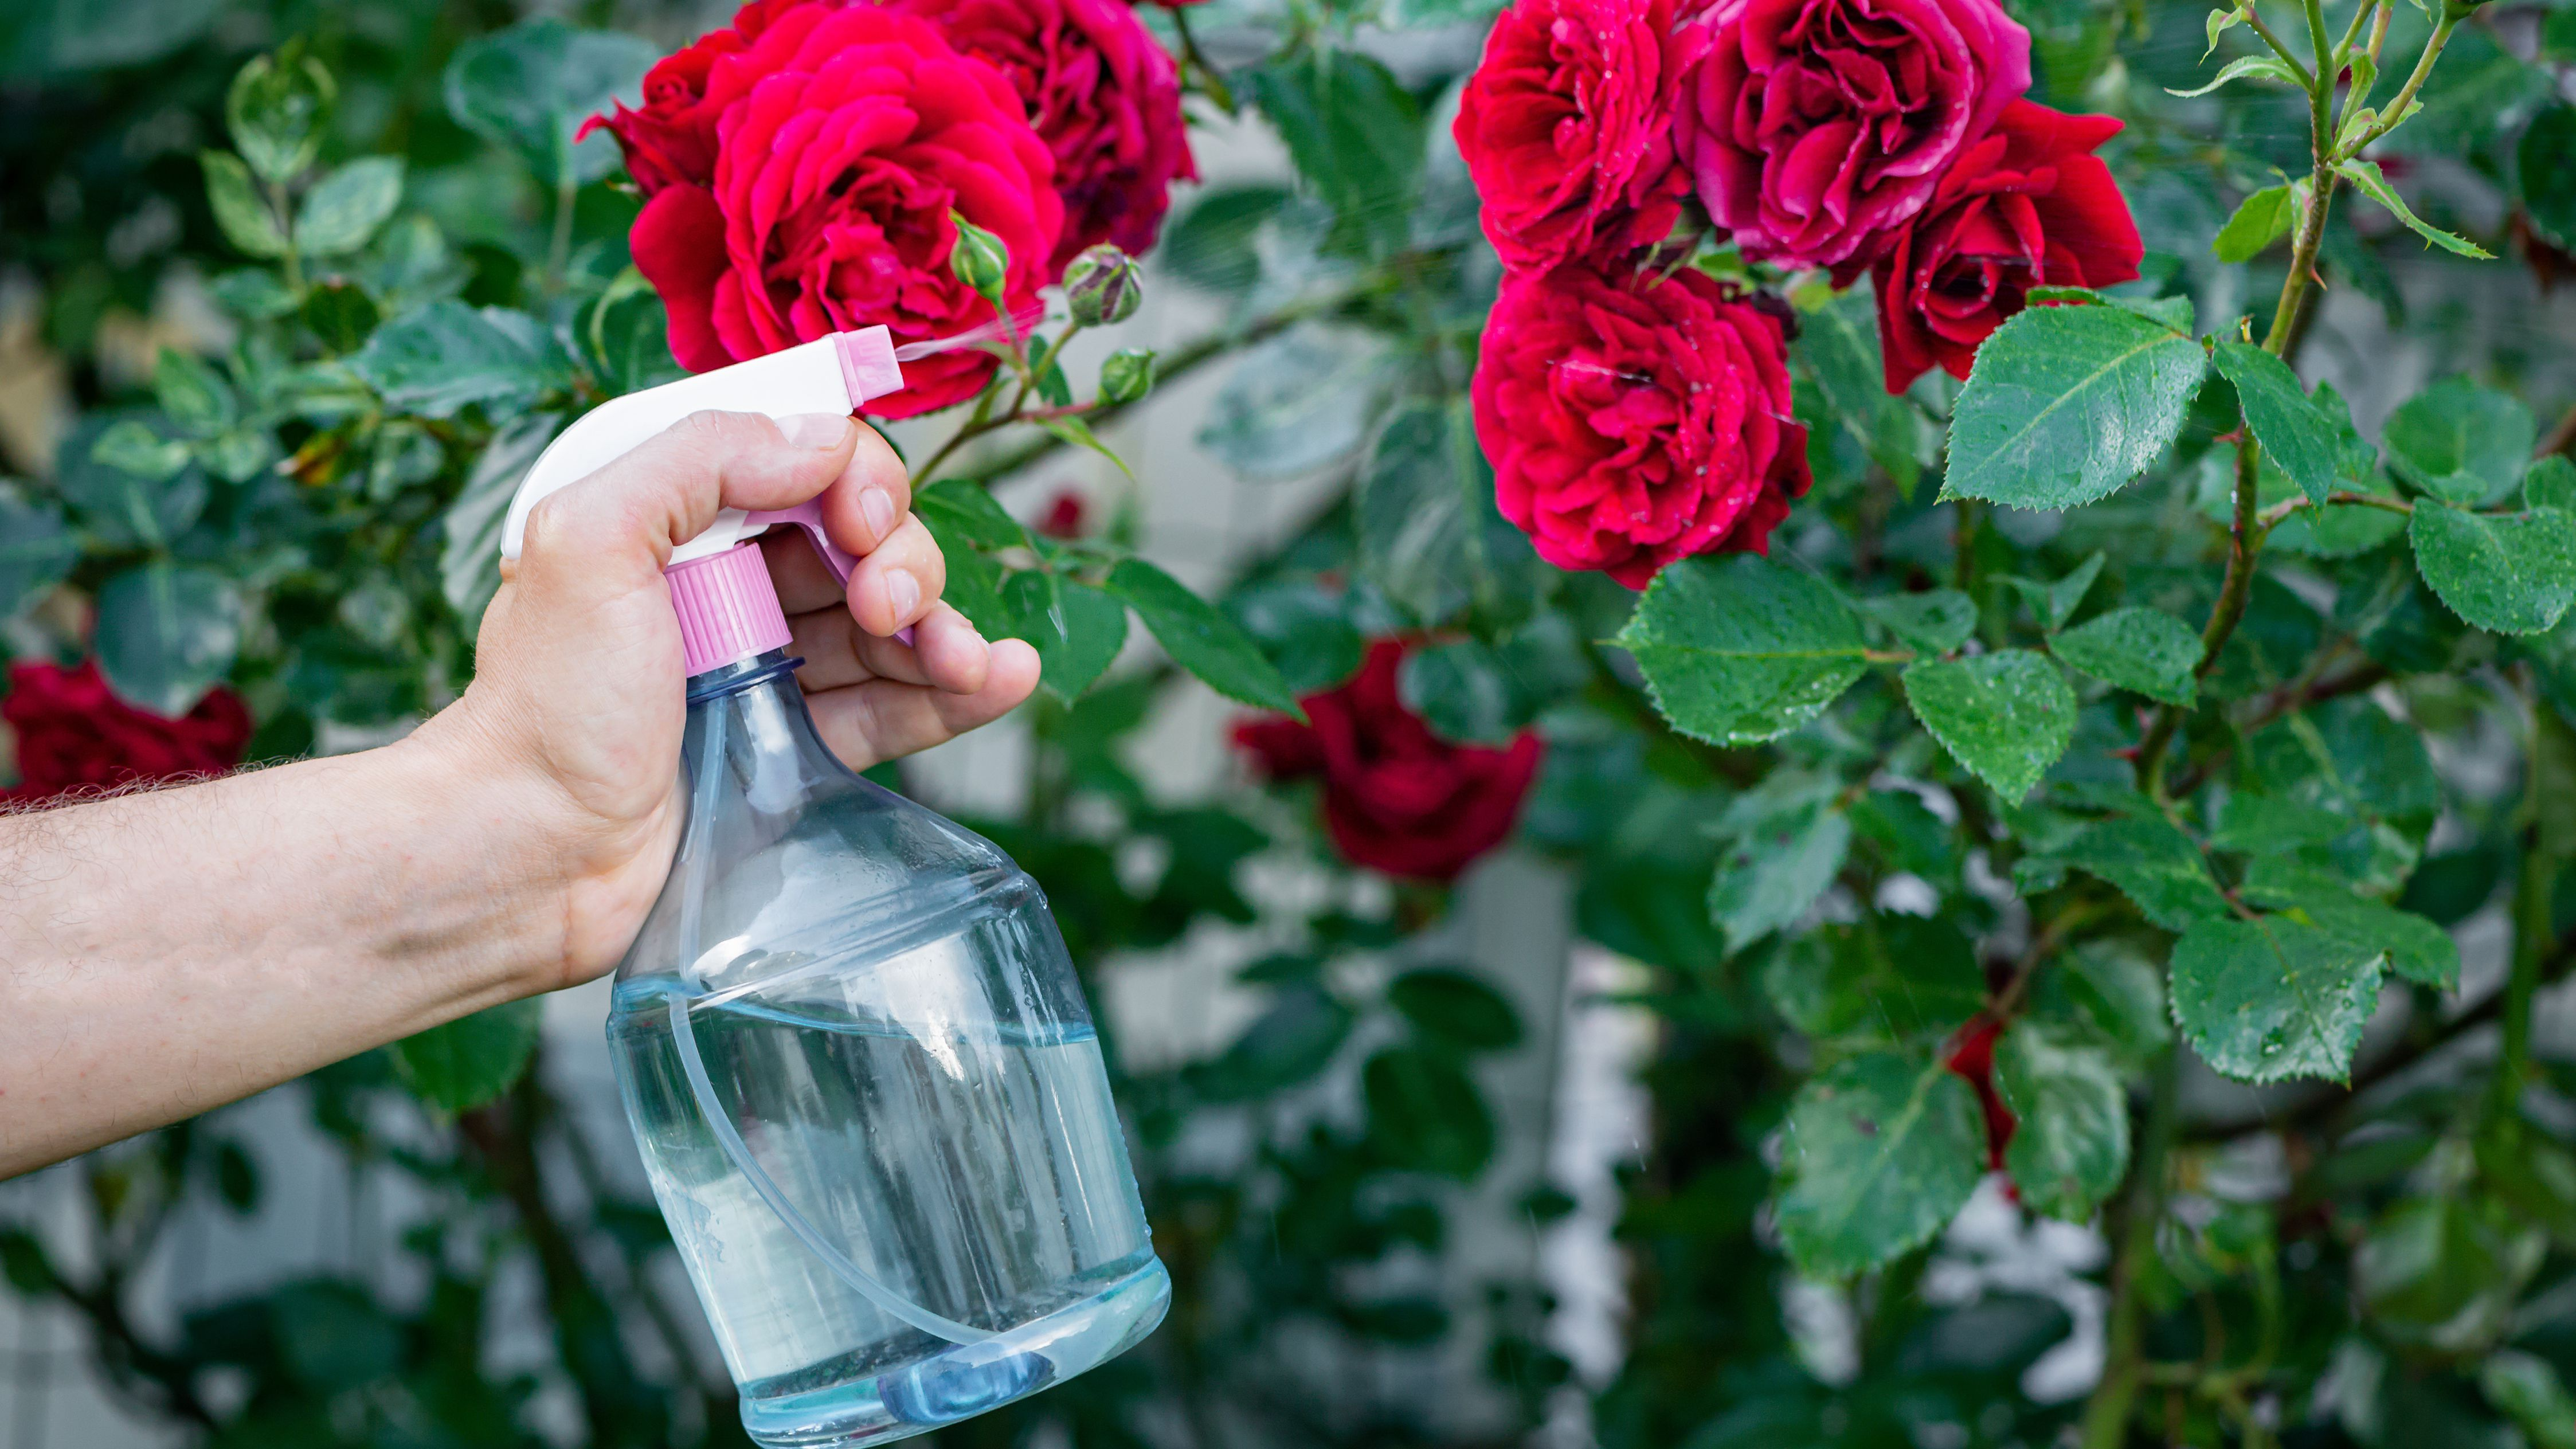 10 Common Rose Problems And How To Fix Them